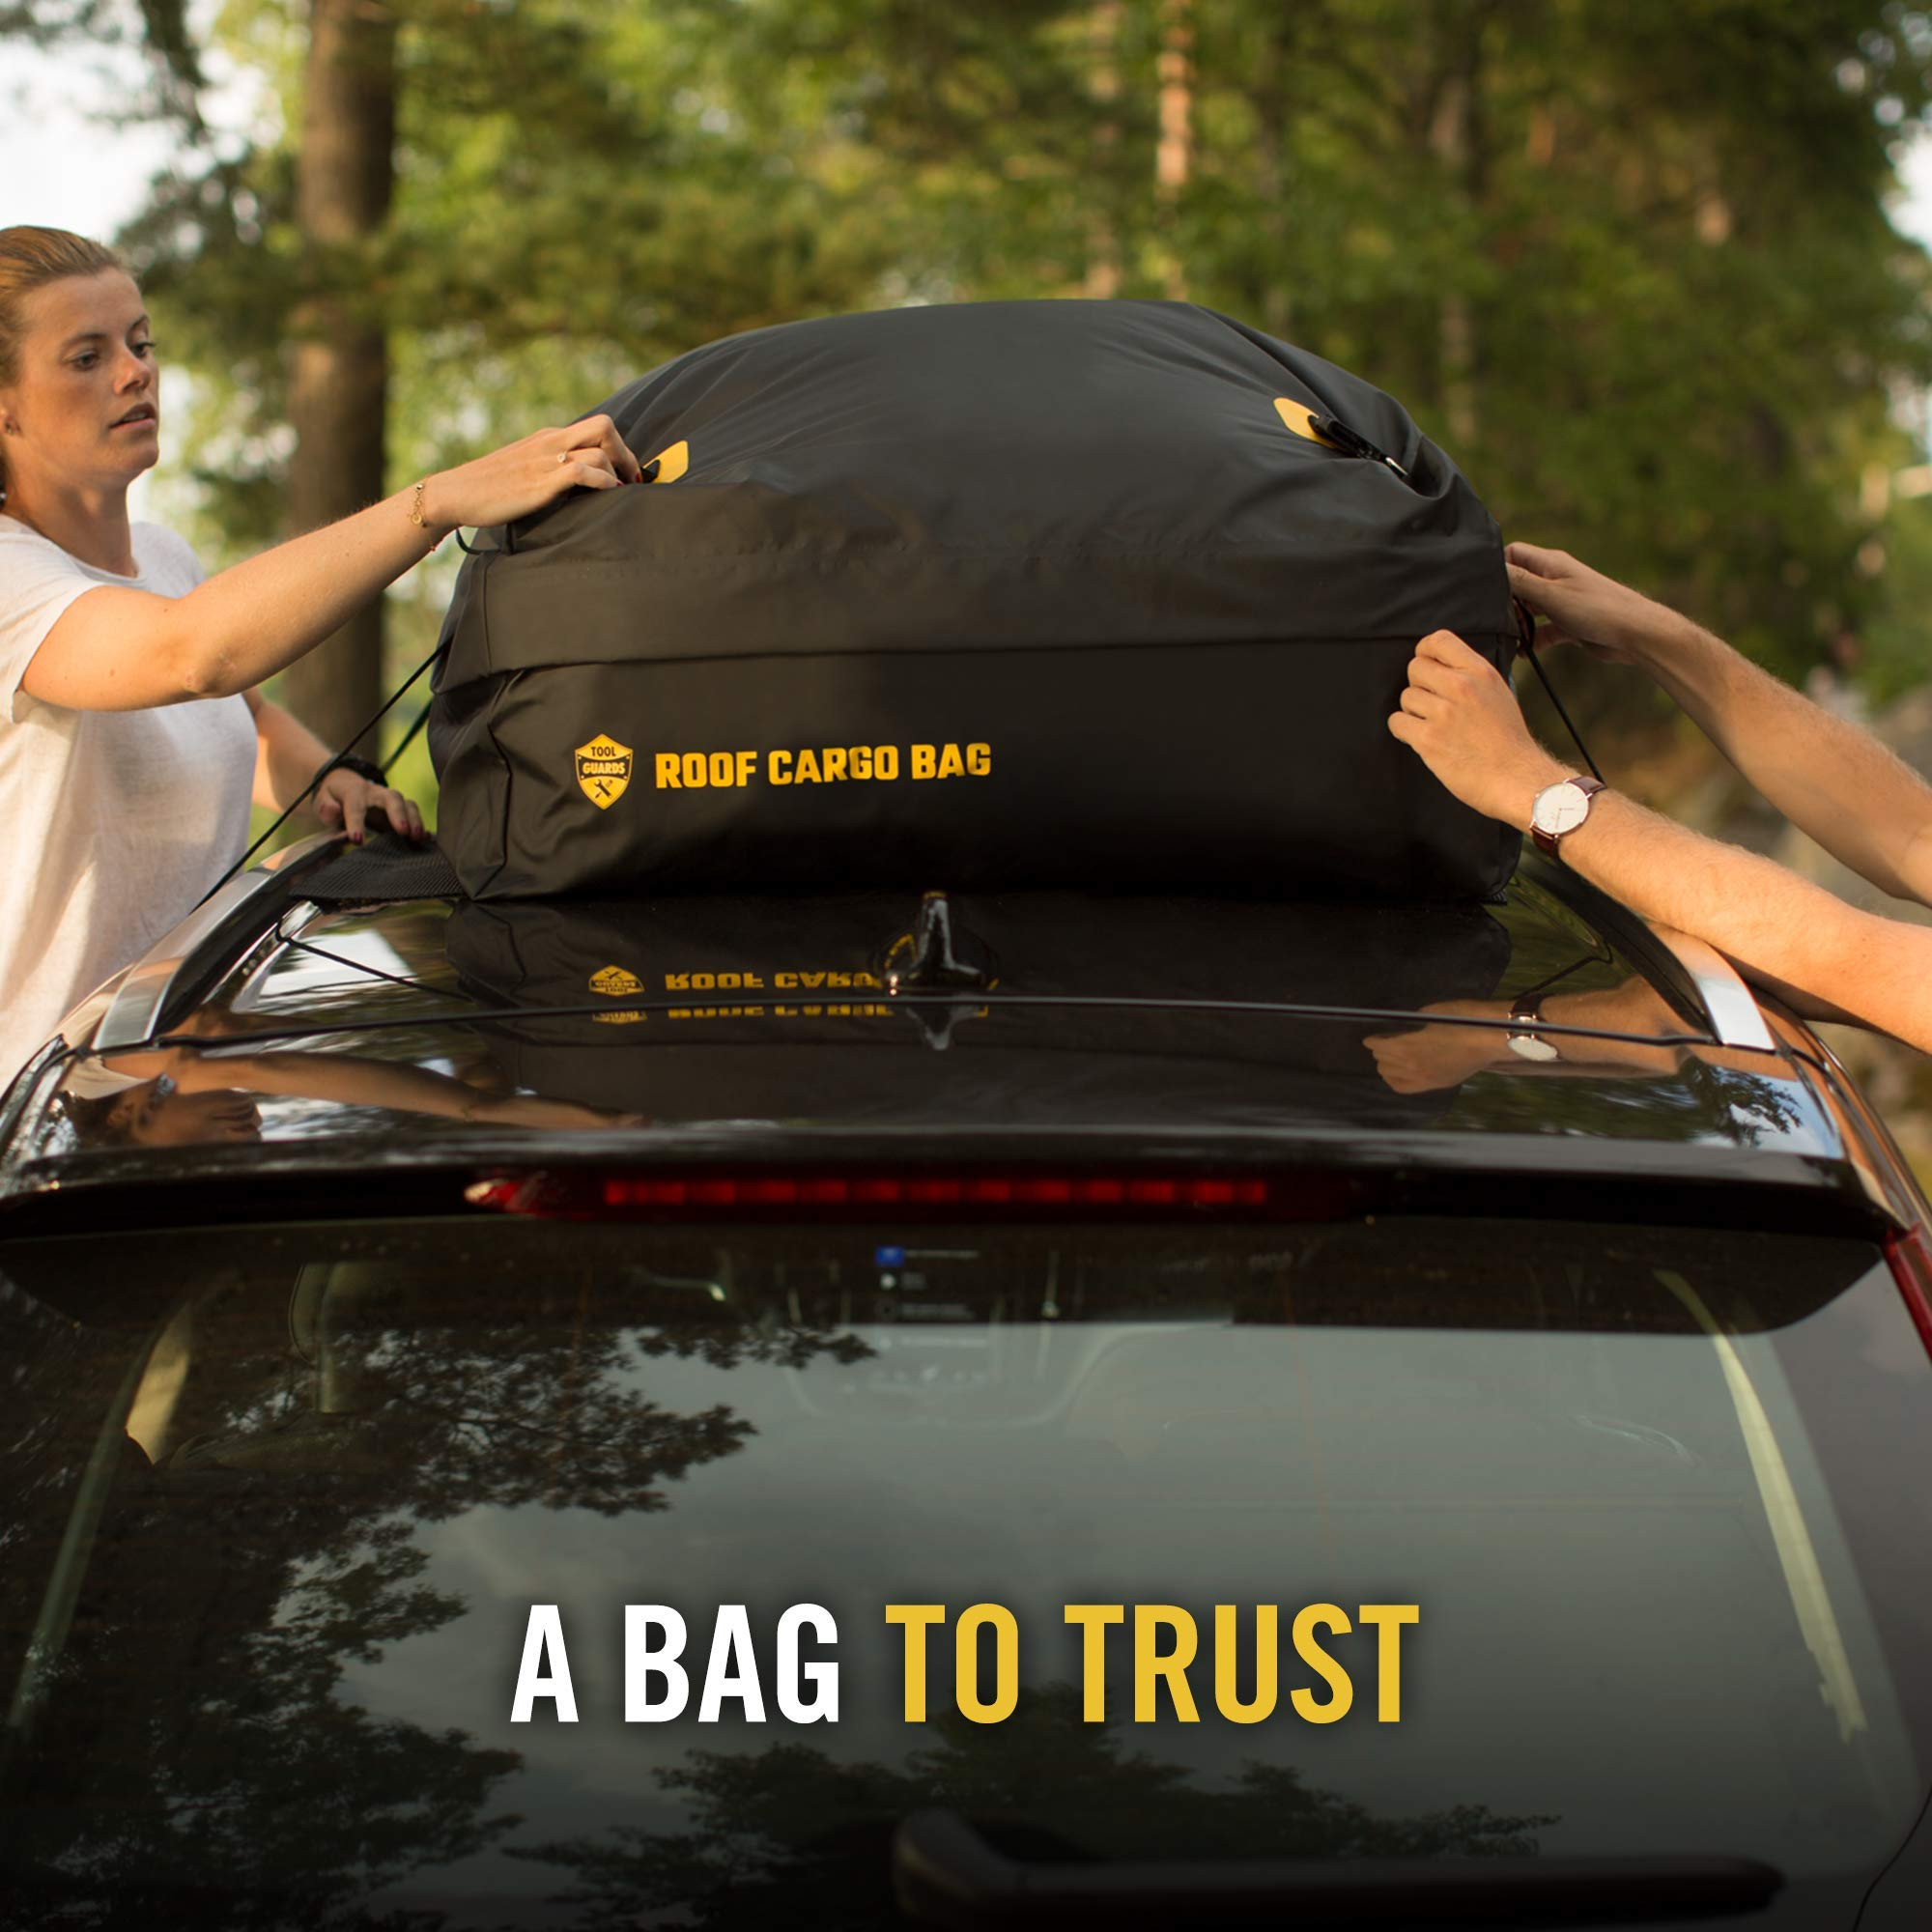 Car Top Carrier Roof Bag + Protective Mat - 100% Waterproof & Coated Zippers 15 Cubic ft - for Cars with or Without Racks by ToolGuards (Image #6)